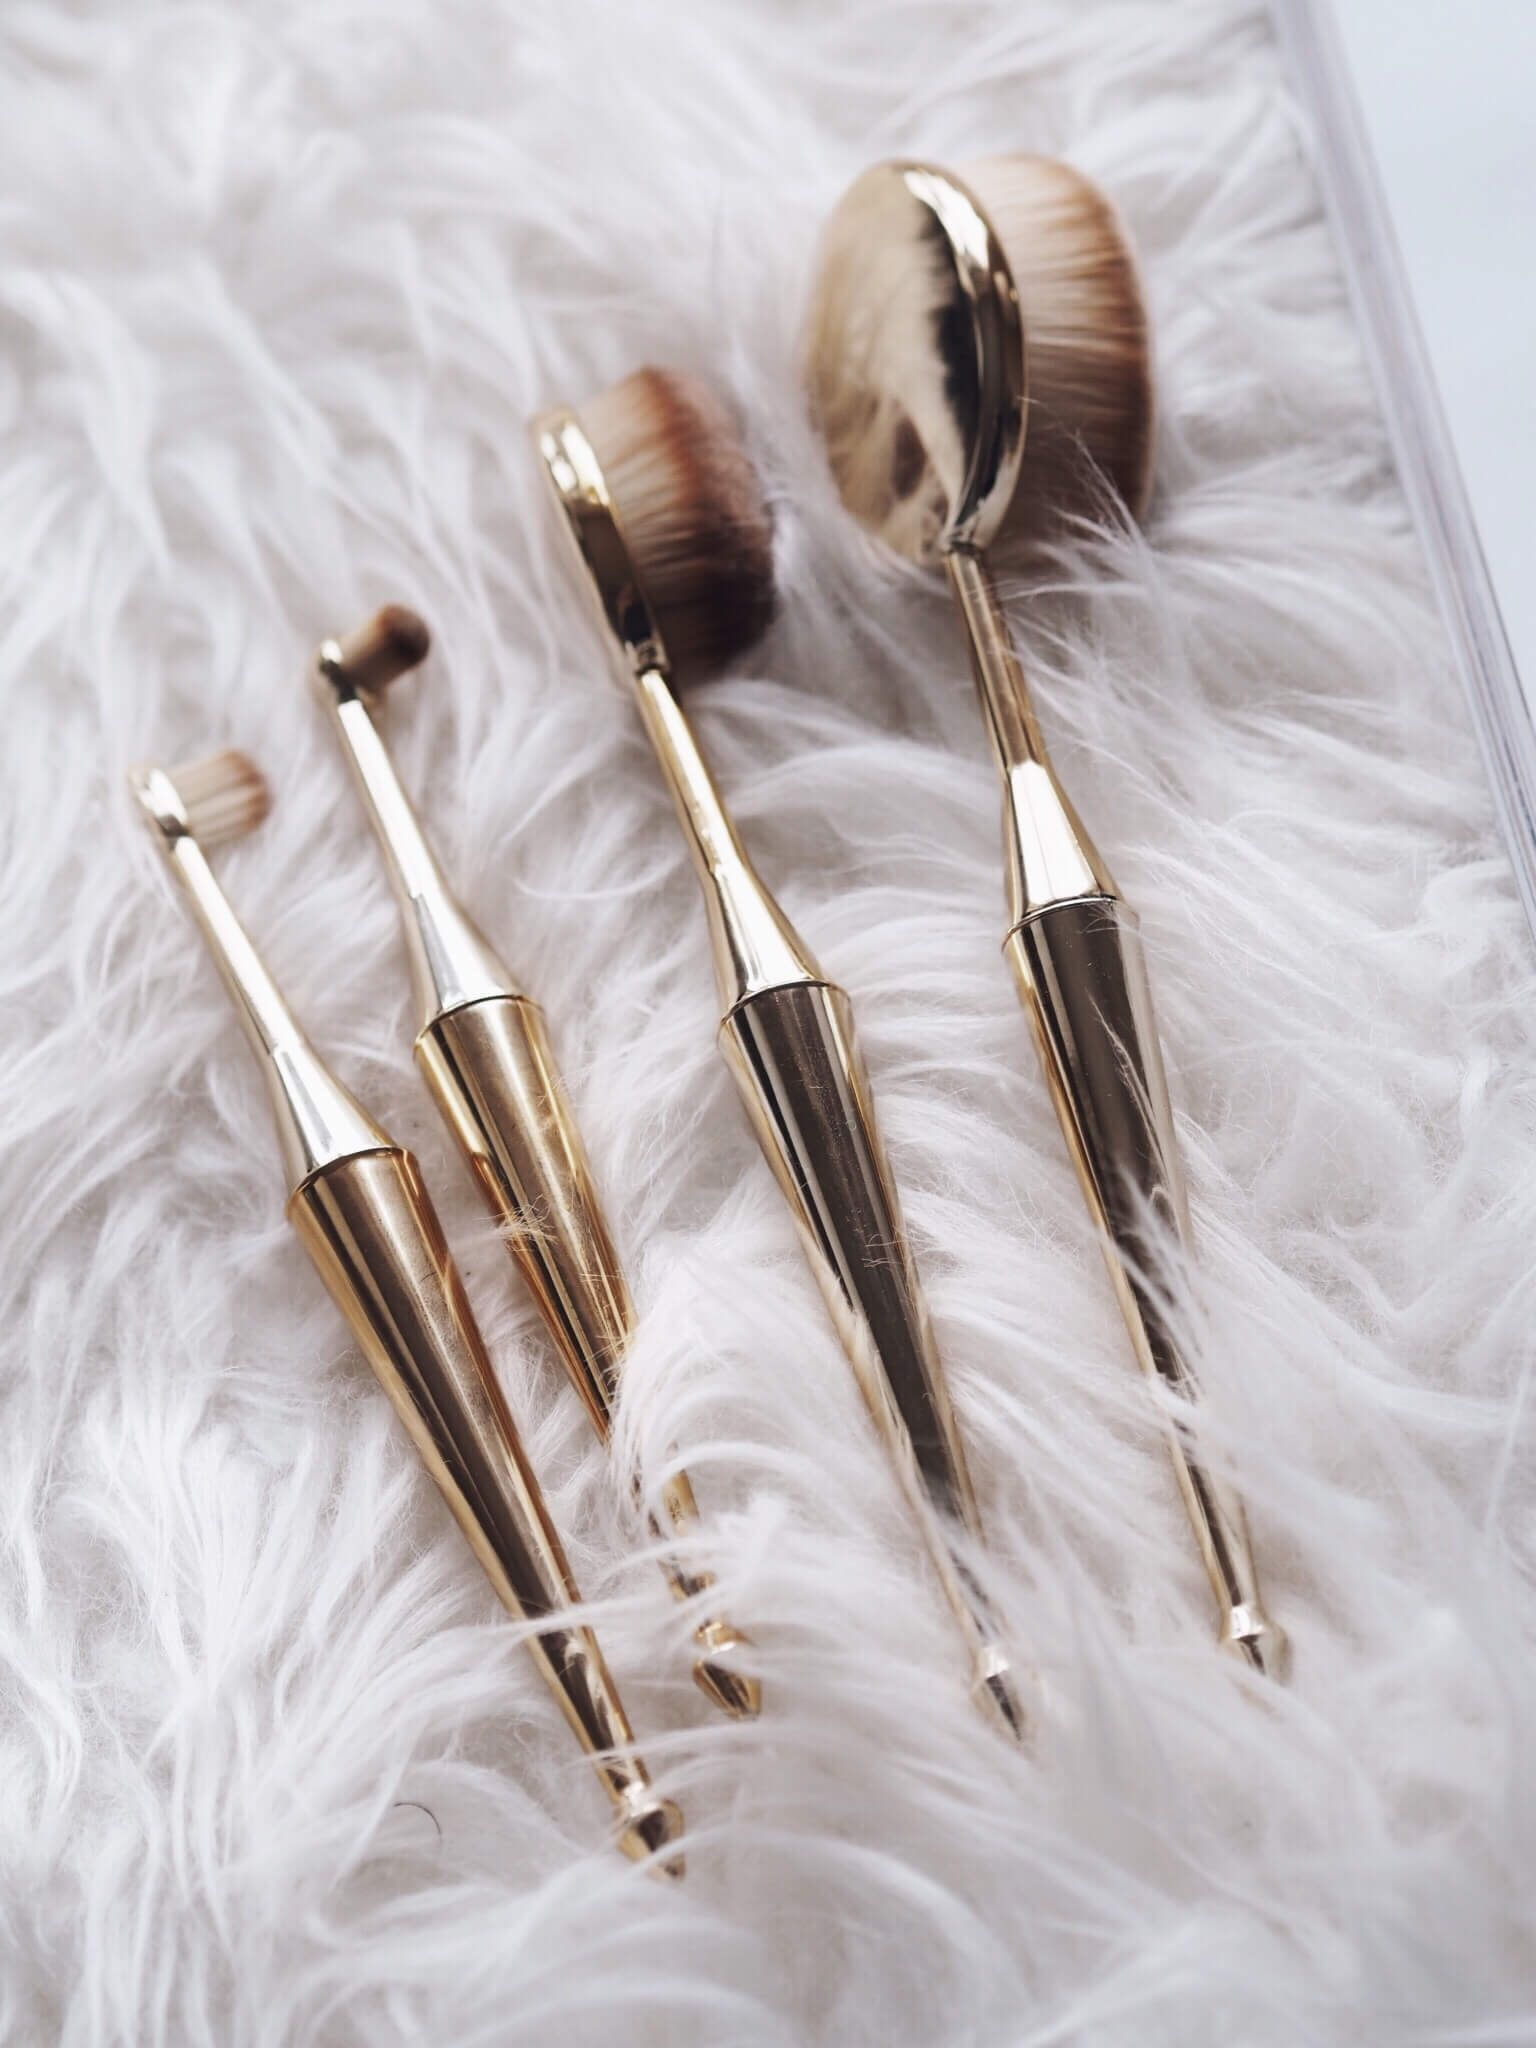 Professional Oval Makeup Brushes Review Worth The Hype